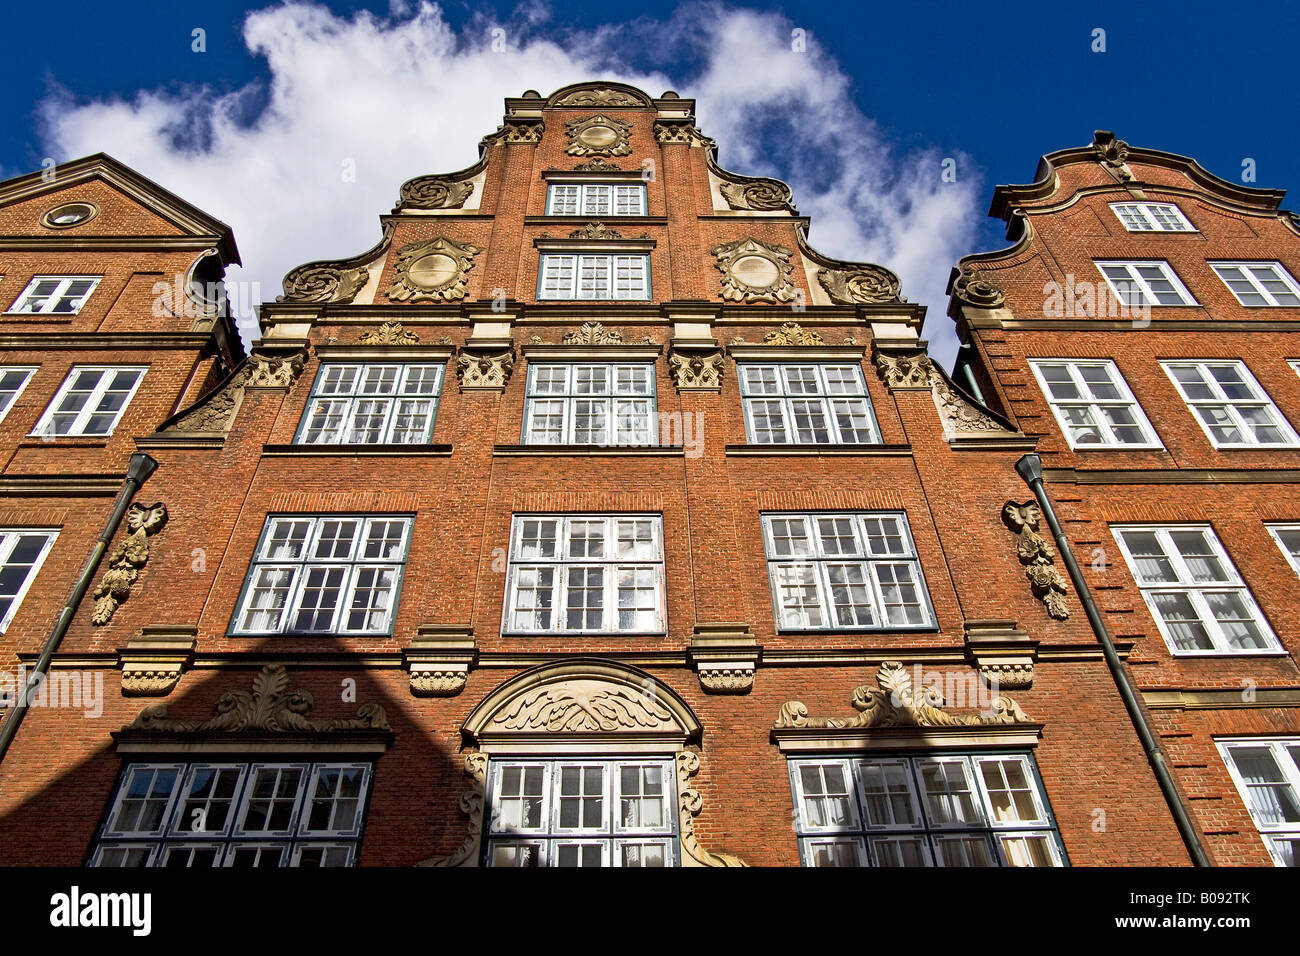 Historic red brick multi-story buildings in the Neustadt, New Town District, Hamburg, Germany - Stock Image